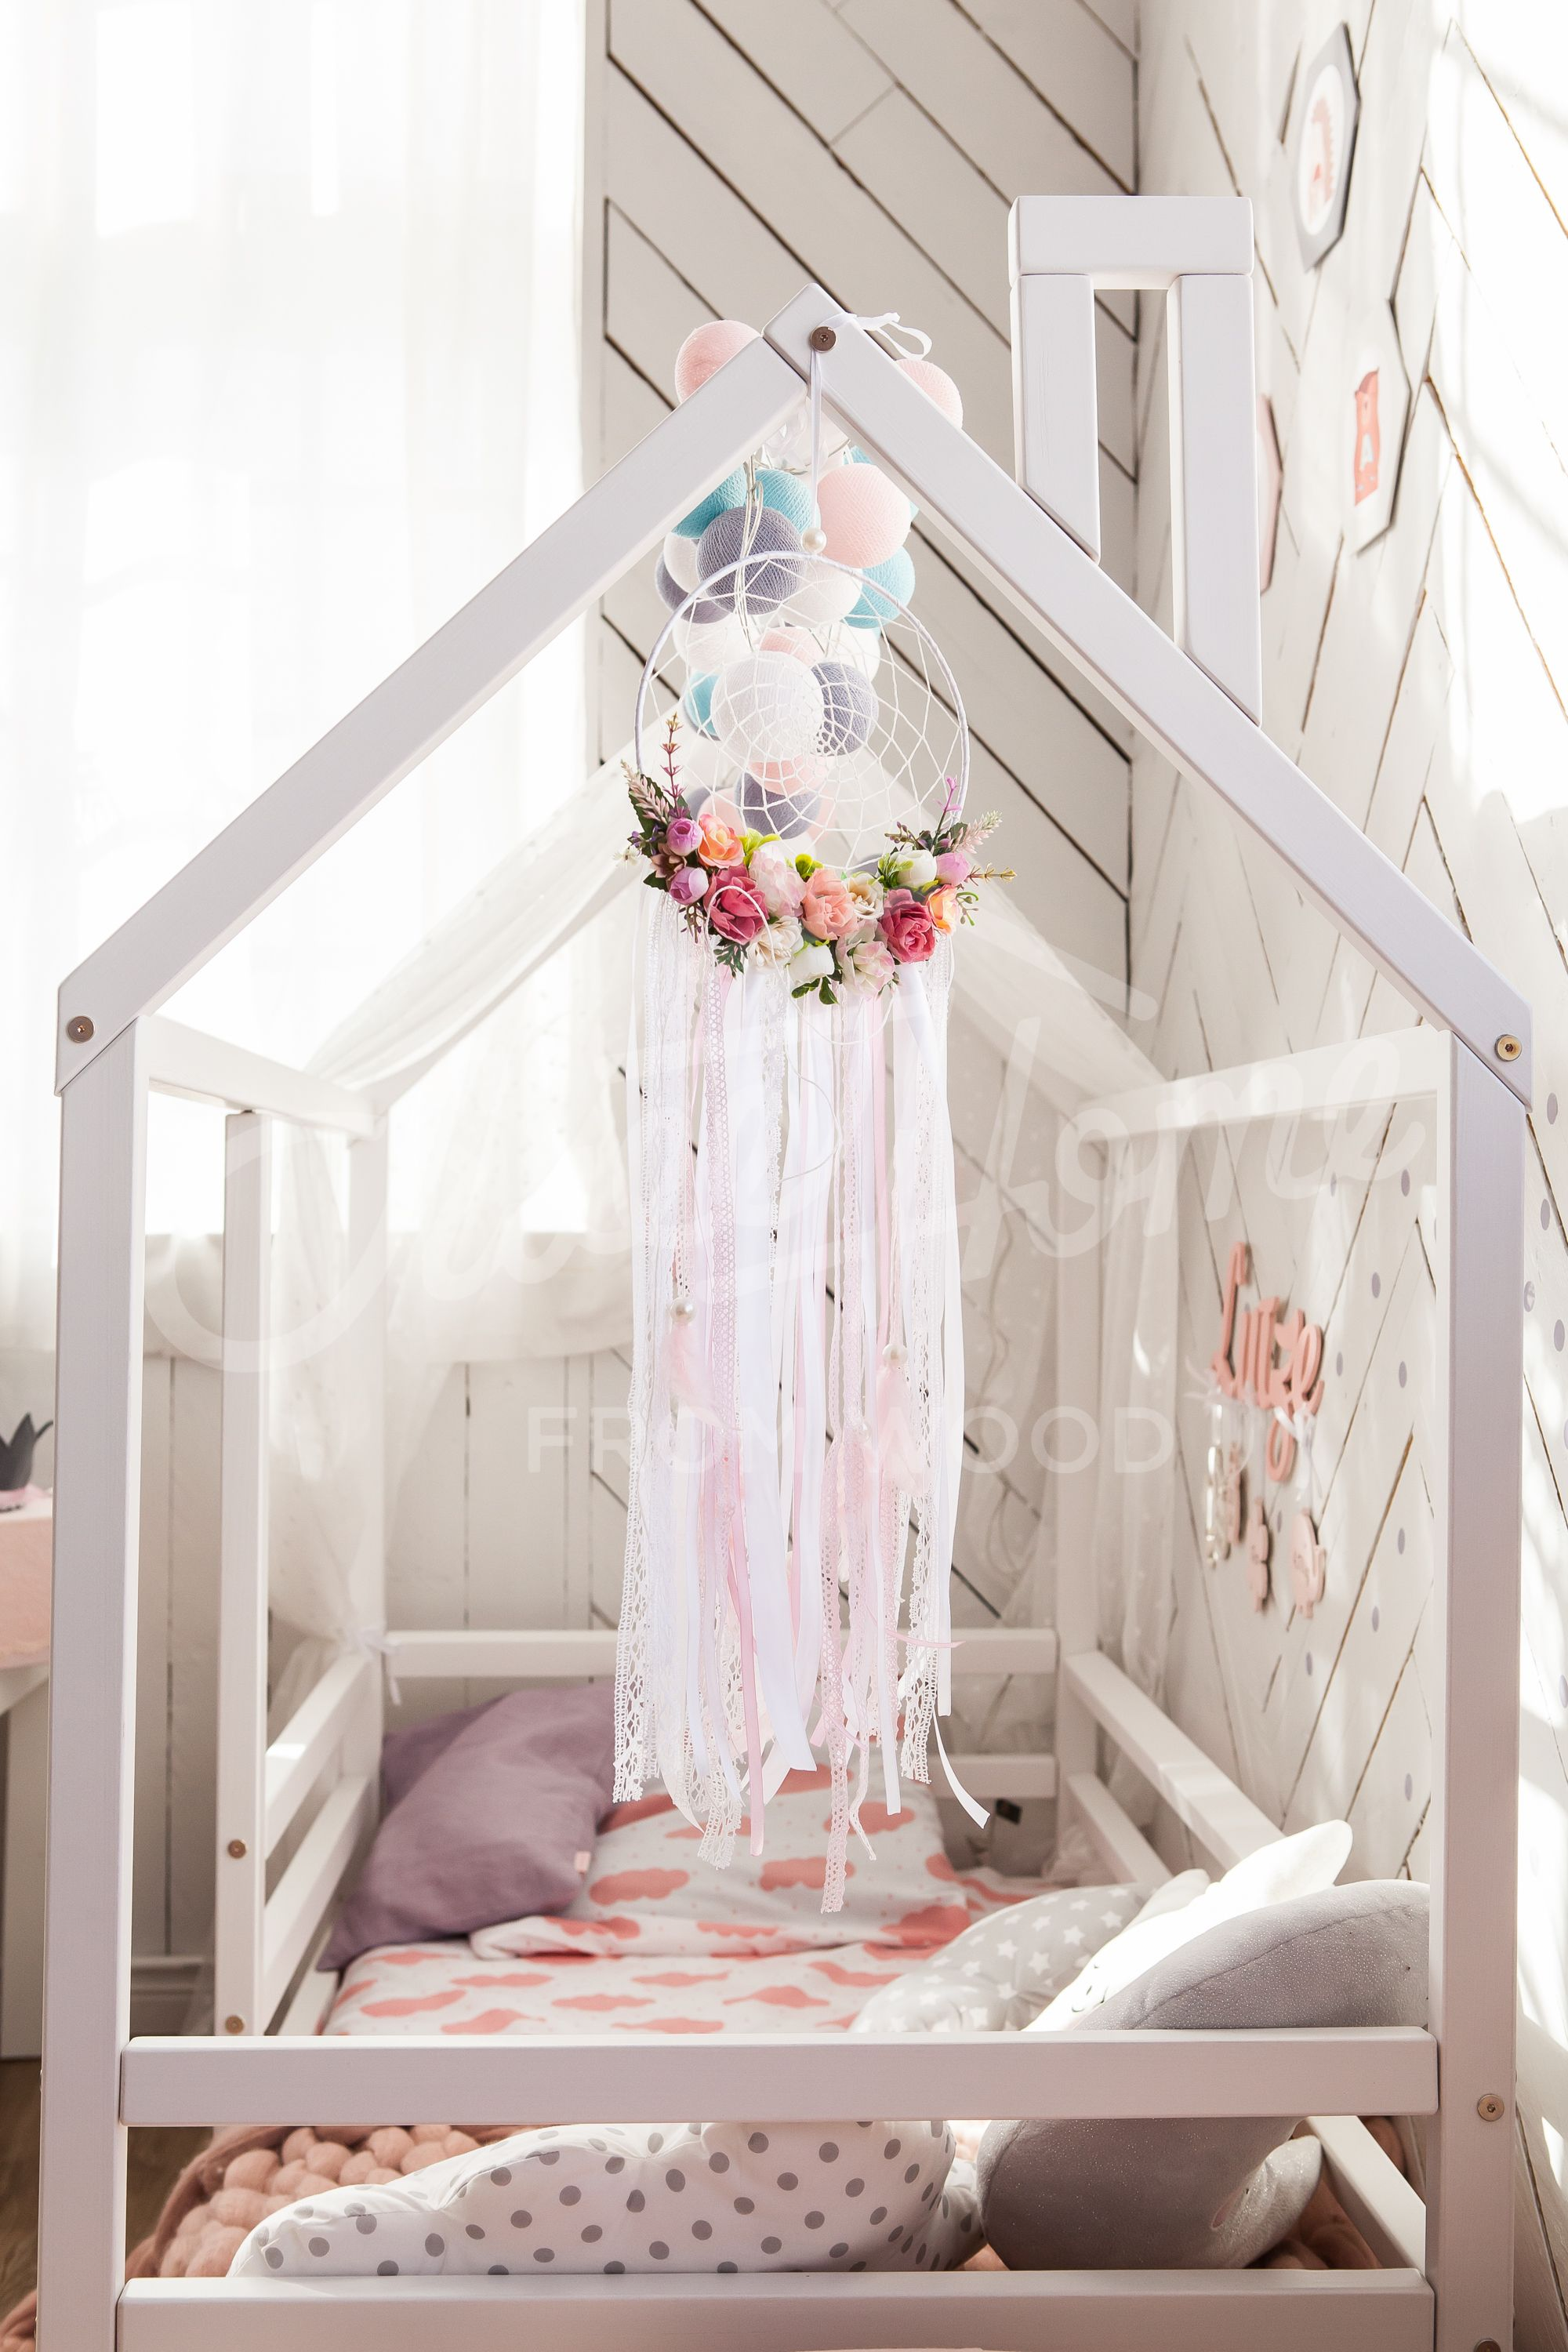 Wood Bed House Frame Bed Baby Bed Nursery Crib Kids Teepee